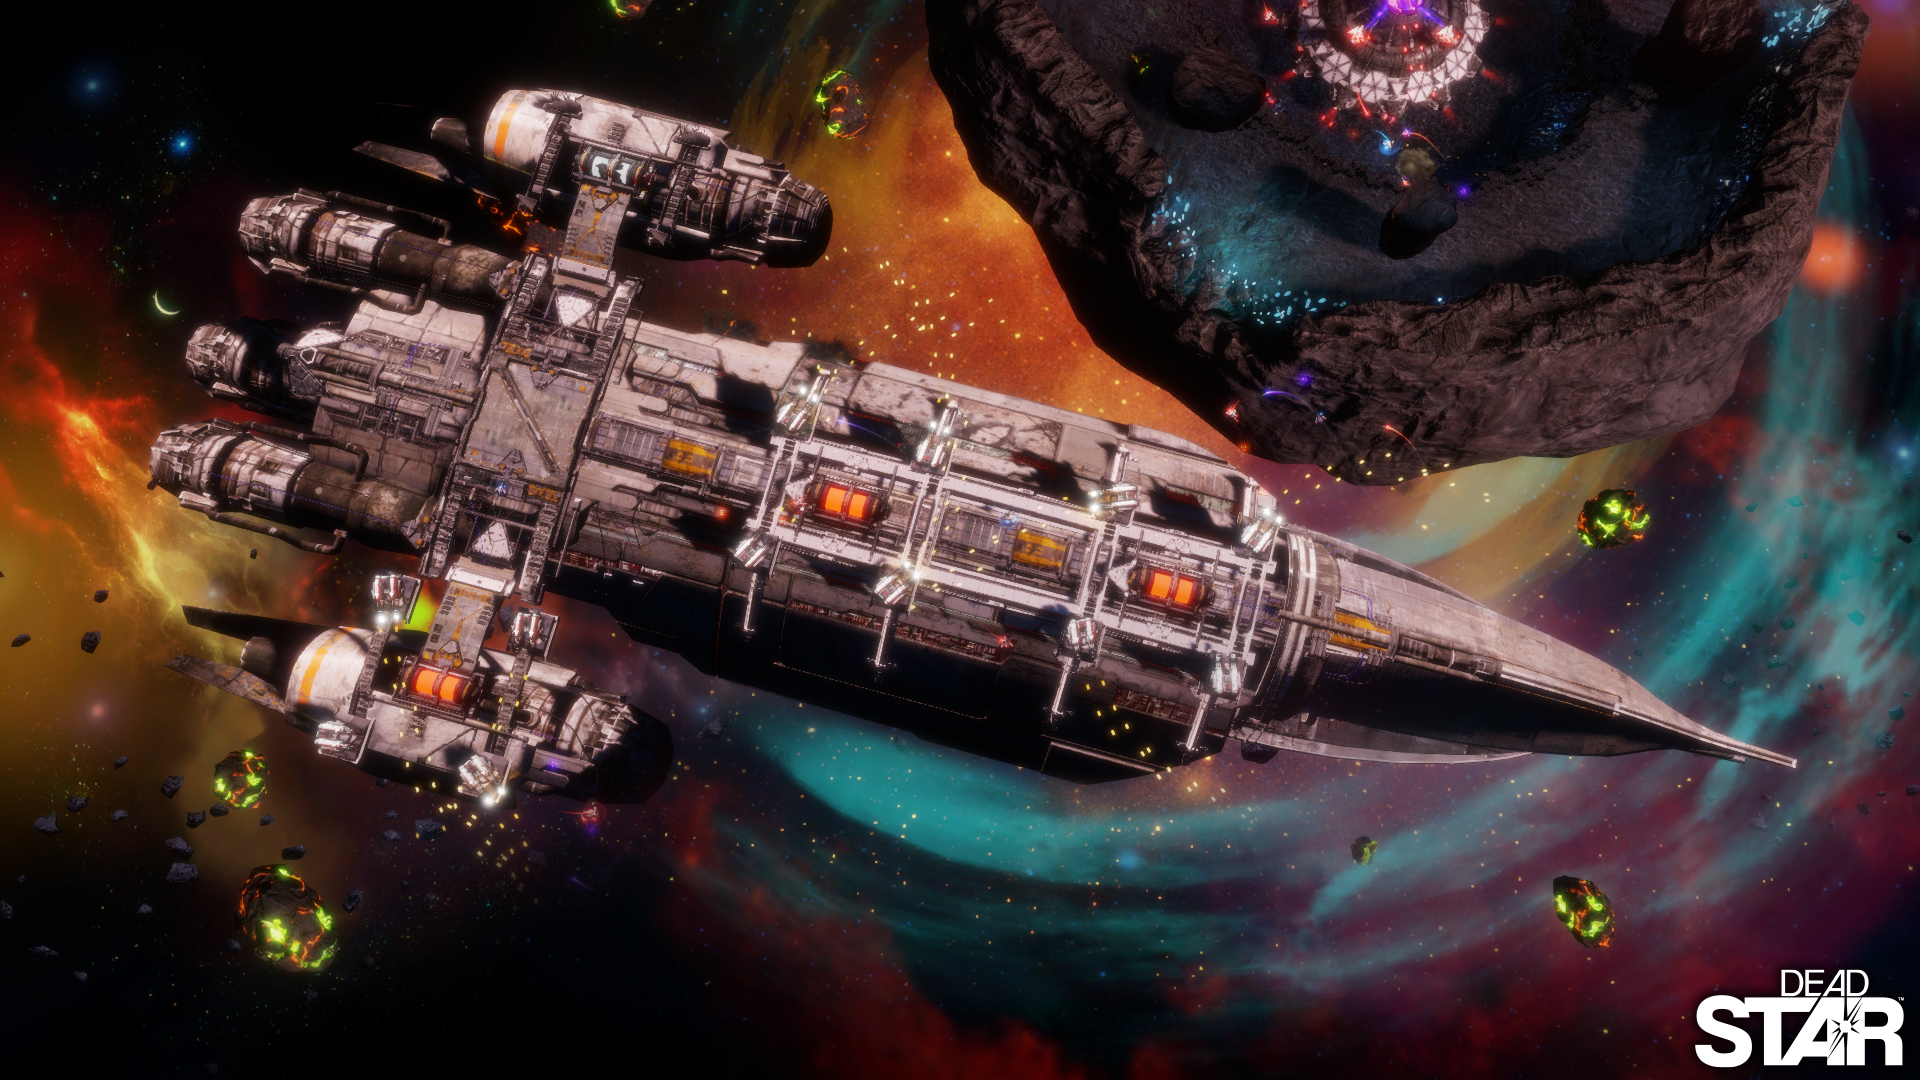 Armature Studios Announce Dead Star Pre-Orders And Plans For The Future